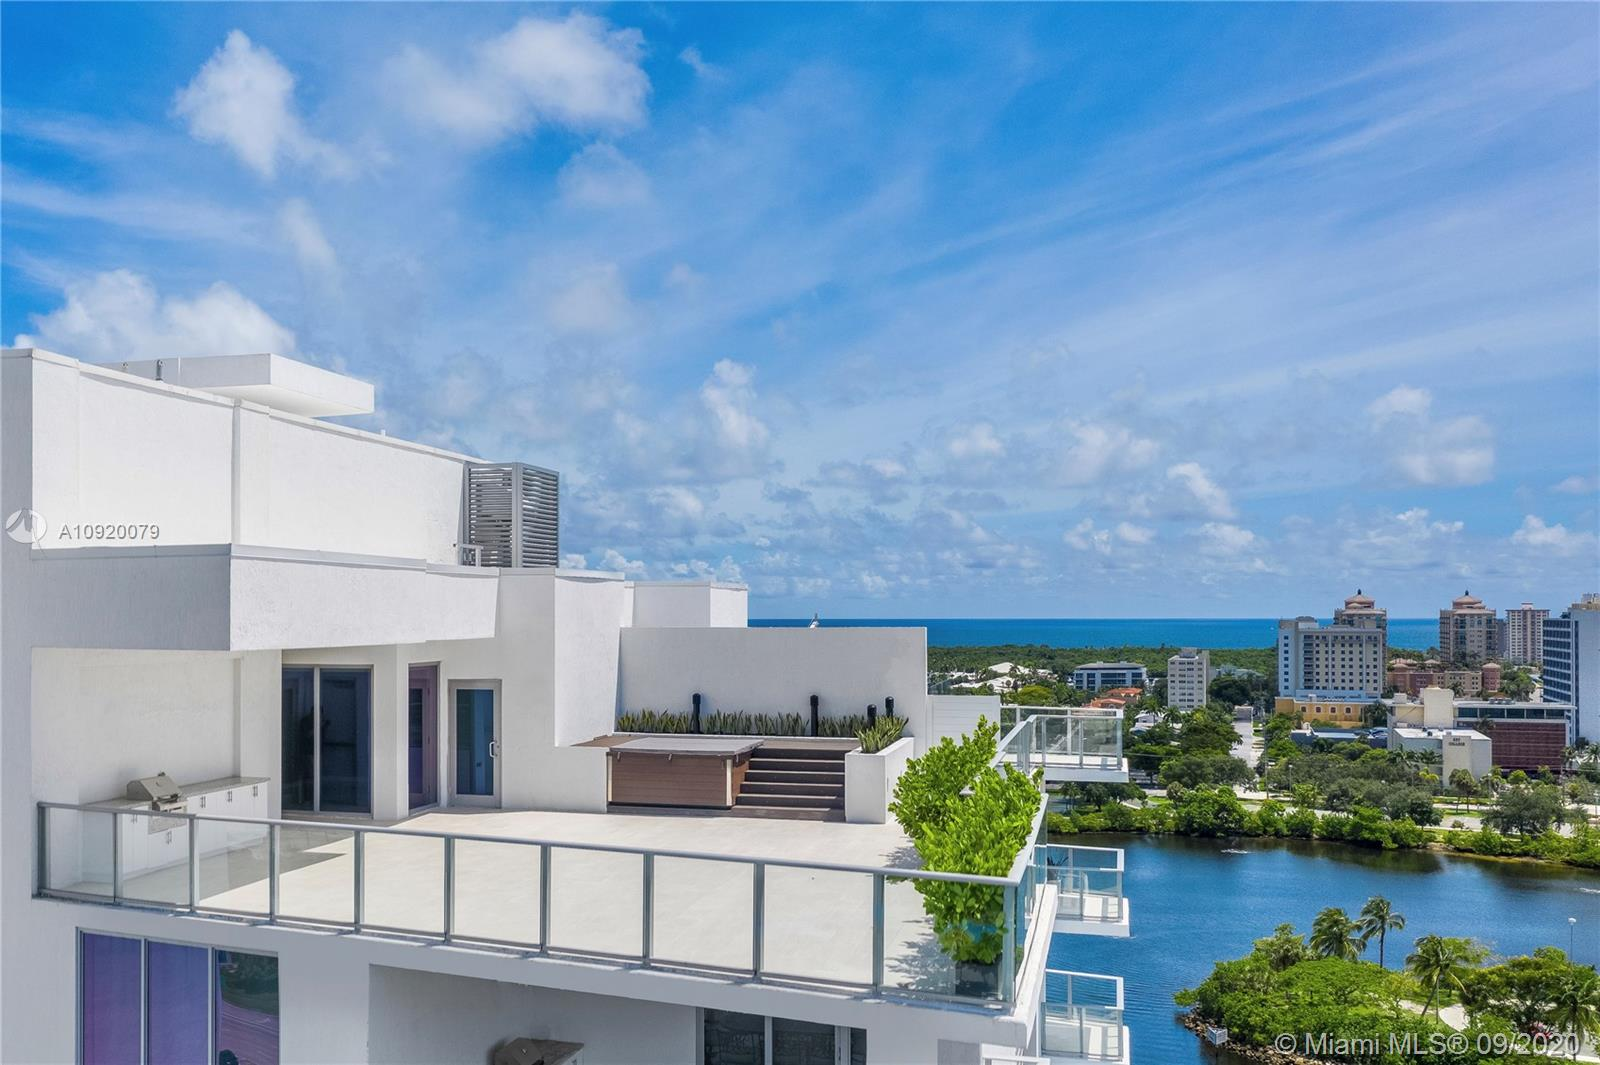 One of Fort Lauderdale's Most Spectacular Penthouses Now Complete & Move-In Ready | 7,200+ Total Sq Ft on 2 Levels | Ocean, Intracoastal, Skyline & Sunset Views | Wolf & Sub-Zero Appliances with Italian Cabinetry | 4x4 Porcelain Tiles Throughout | Jacuzzi & Summer Kitchen on Massive, Private Terrace Overlooking Downtown | Private 2 Car Garage, Boat Slip, 2 Large Storage Lockers, Golf & Kayak Storage ALL INCLUDED | RIVA: 40,000 SF of Amenities including Pool & Lounge, 7,000 SF Gym with Fitness Studio, Resort Style Spa with Sauna, Steam & Massage Rooms, Residence Lounge, Sunset Deck with Jacuzzi, Cucina to Entertain, 24/7 Front Desk Attendant, Valet, 2 Dog Walks, 400 Feet of Waterfront, Boat Slips & Central Location.  Speak with the On-Site Sales Team to Tour Both Available Penthouses.